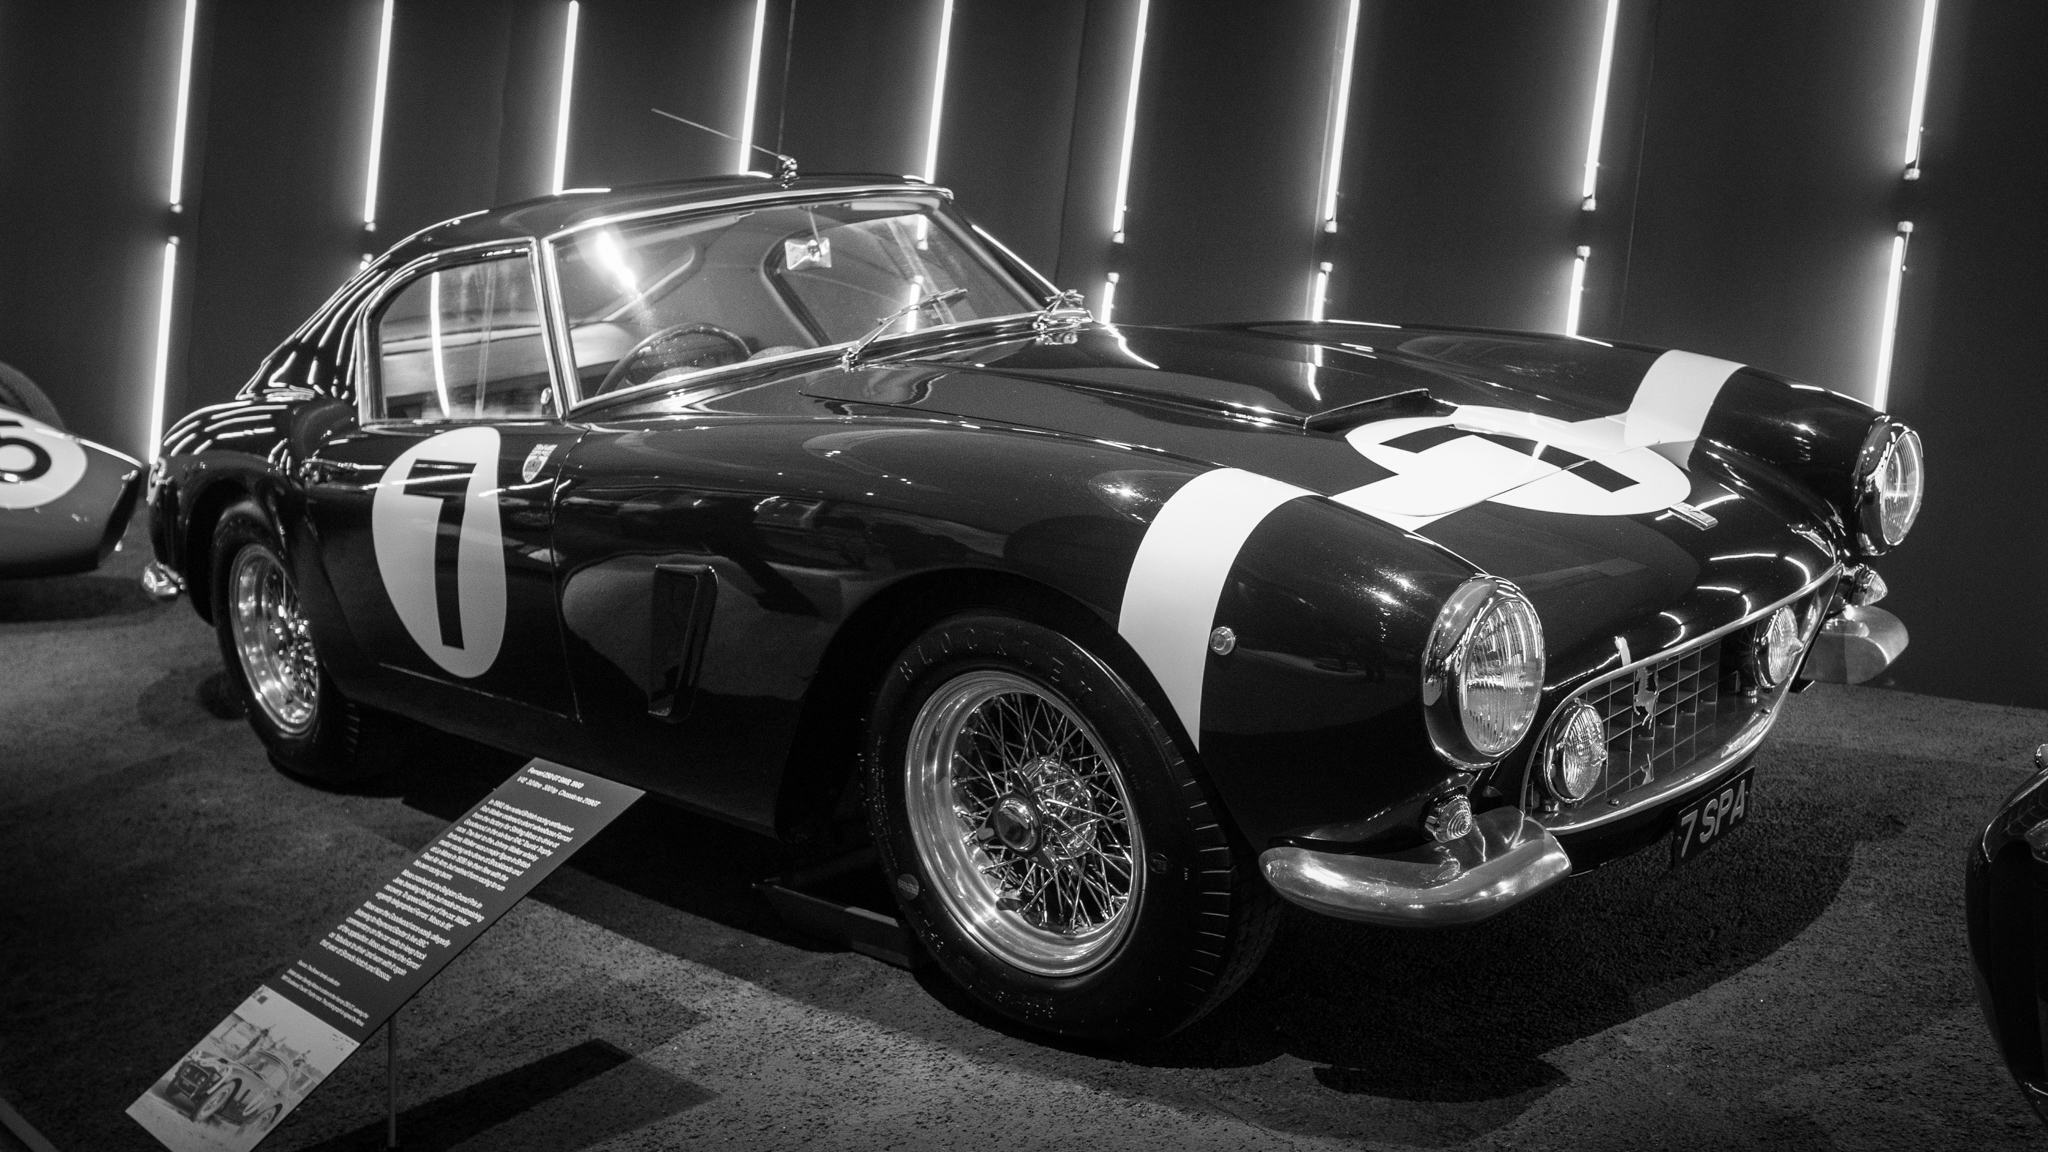 This beautiful car was raced at Goodwood by none other than Stirling Moss